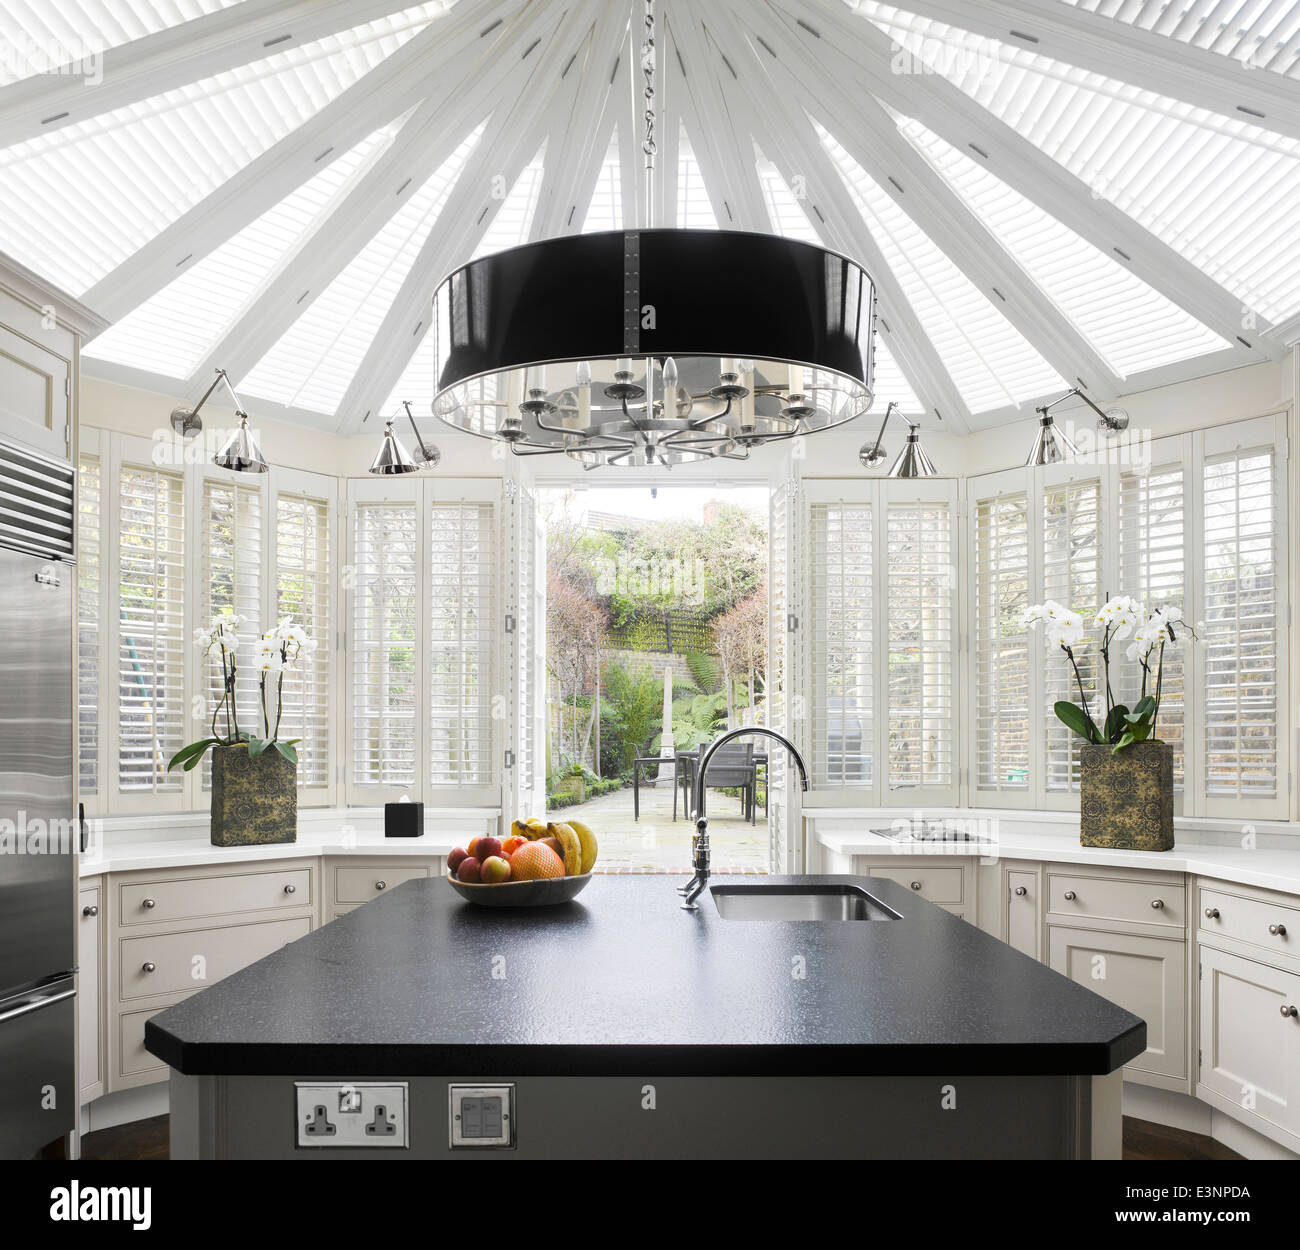 Interiors Conservatory Extension Blinds Stock Photos & Interiors ...